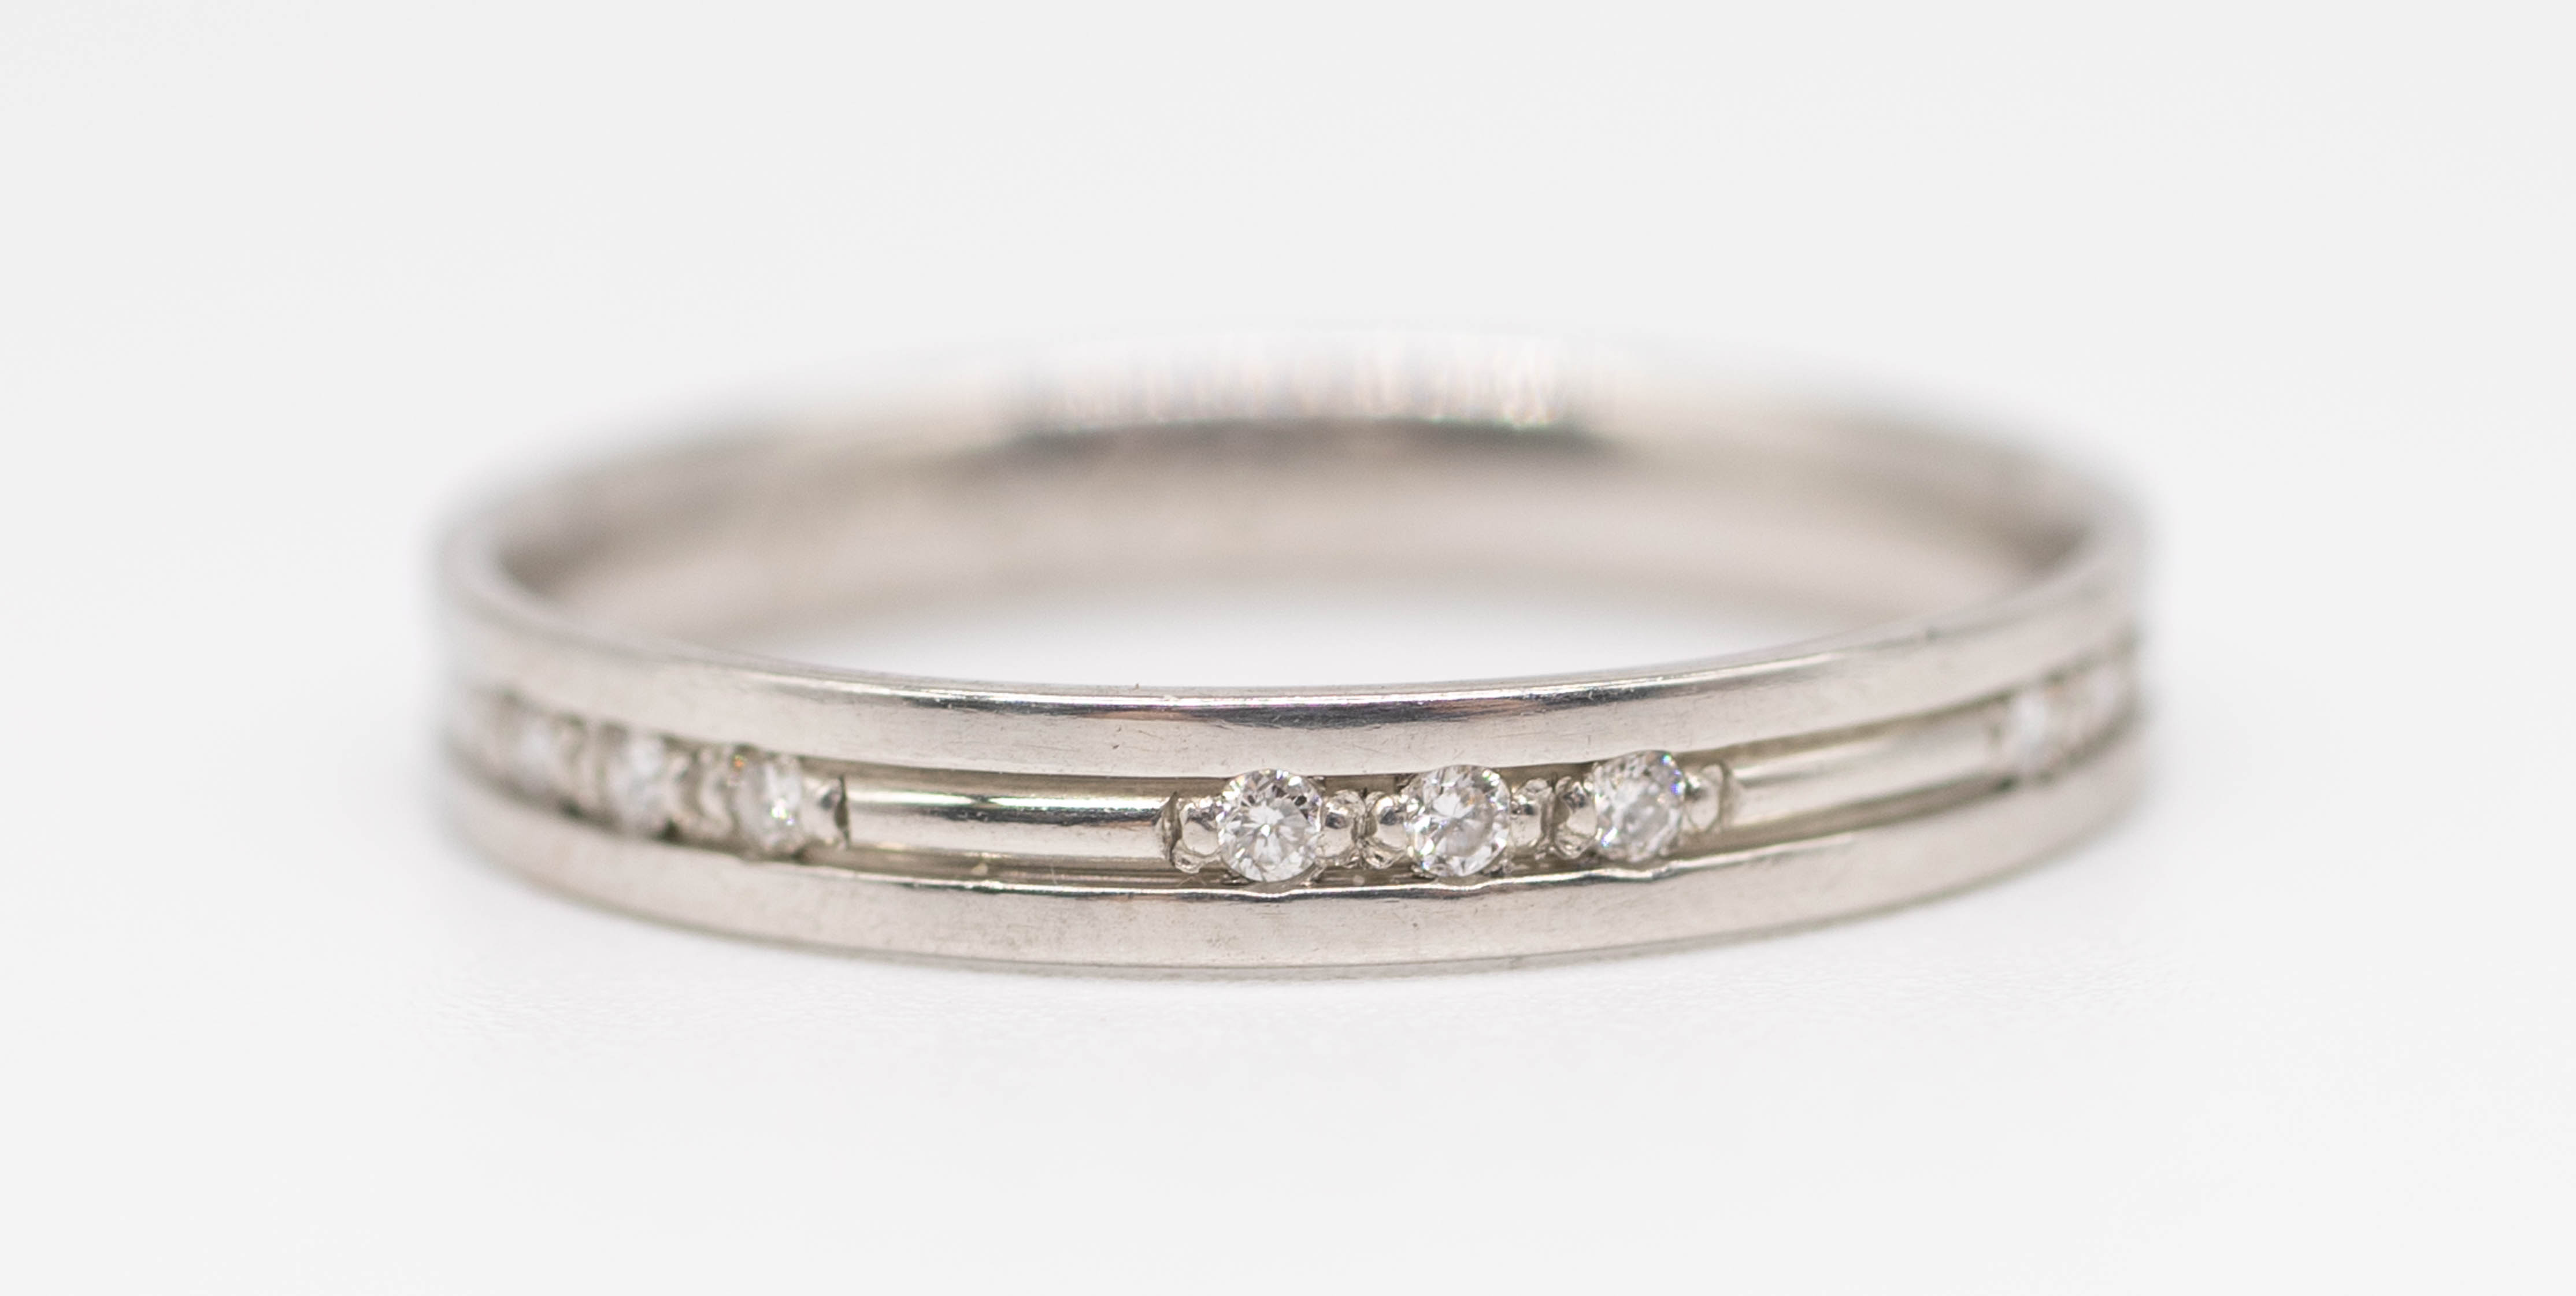 A platinum and diamond set band ring, size N.